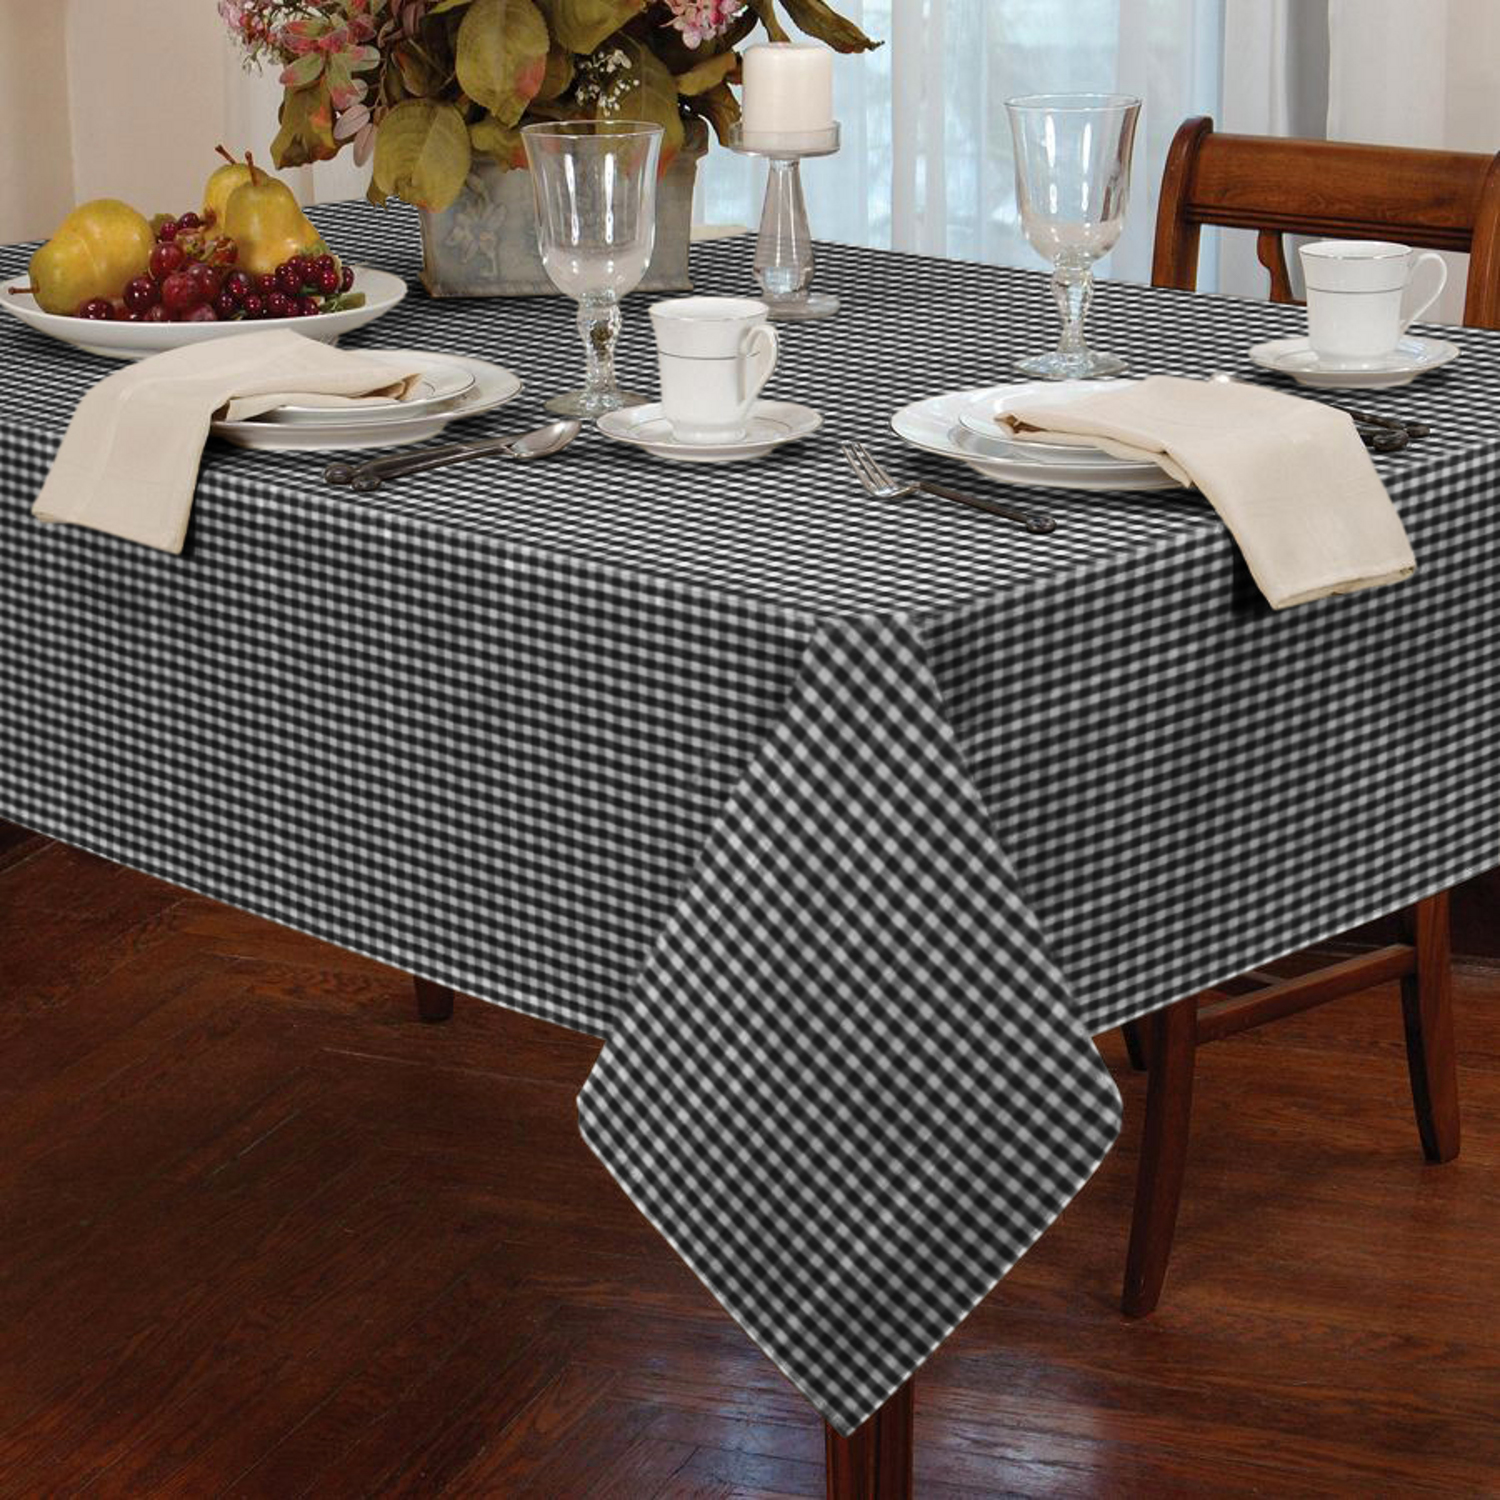 Garden picnic gingham check tablecloth dining room table for Table linens